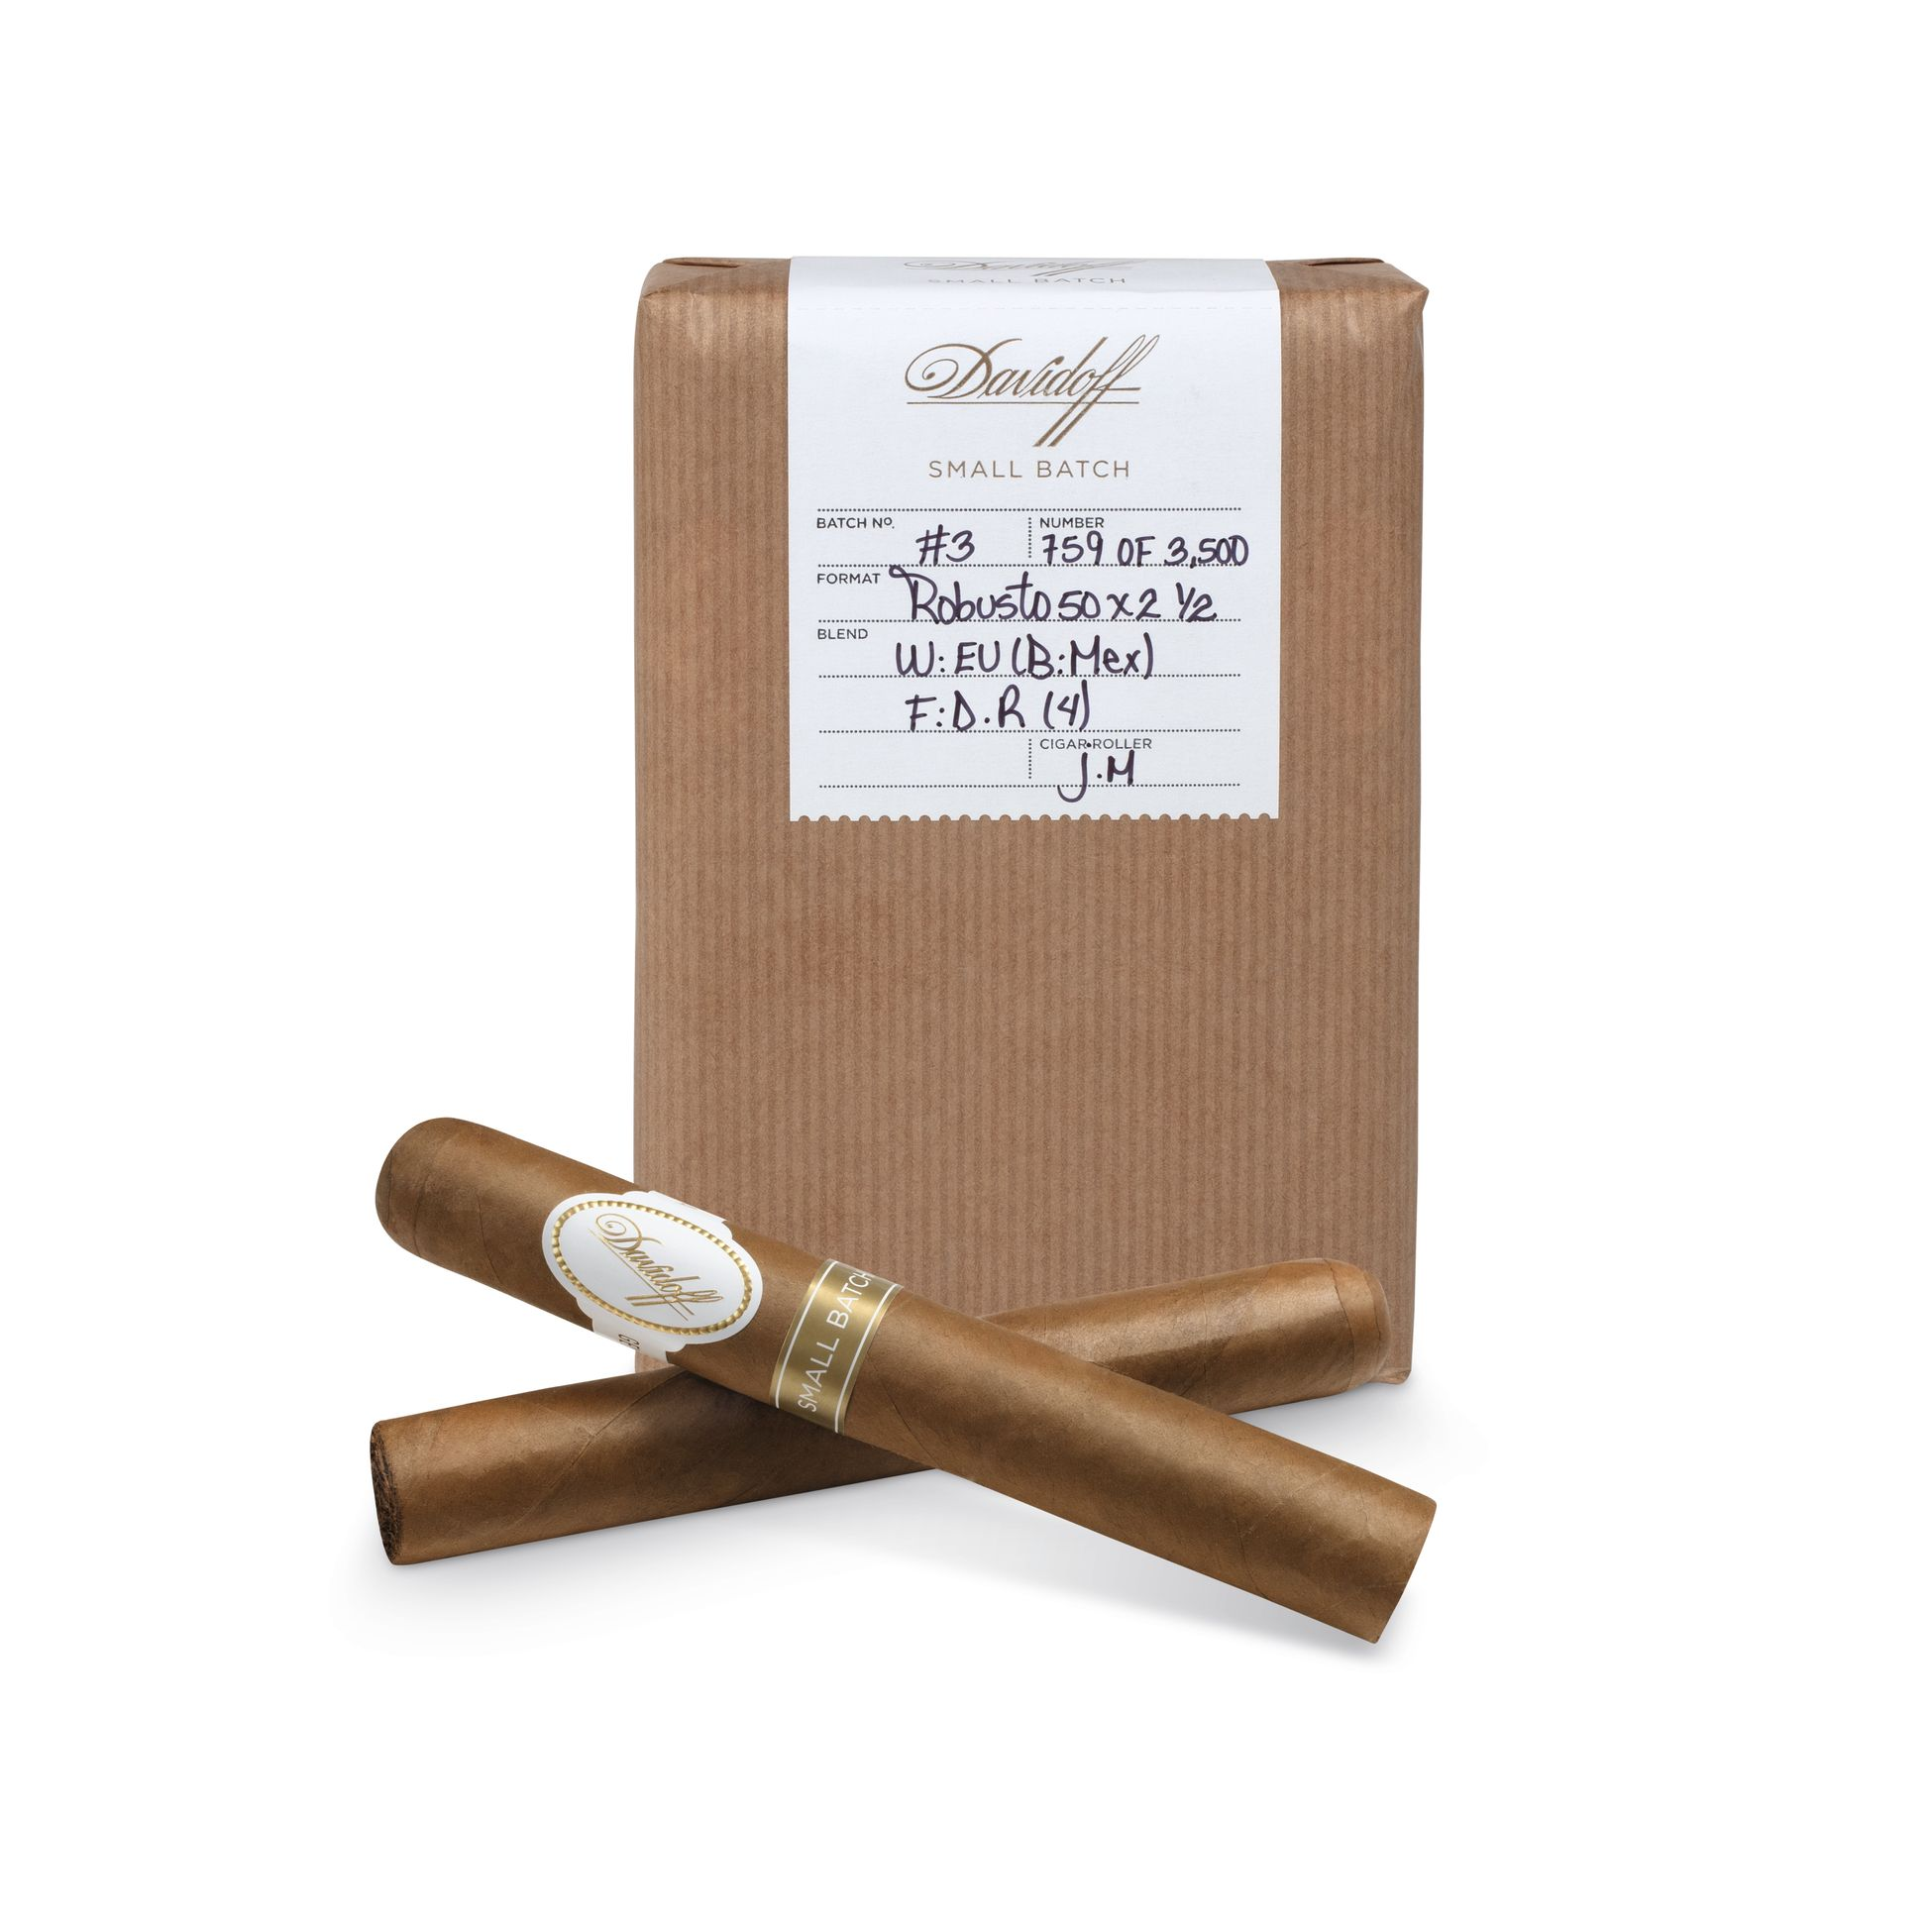 Davidoff Small Batch Number 3